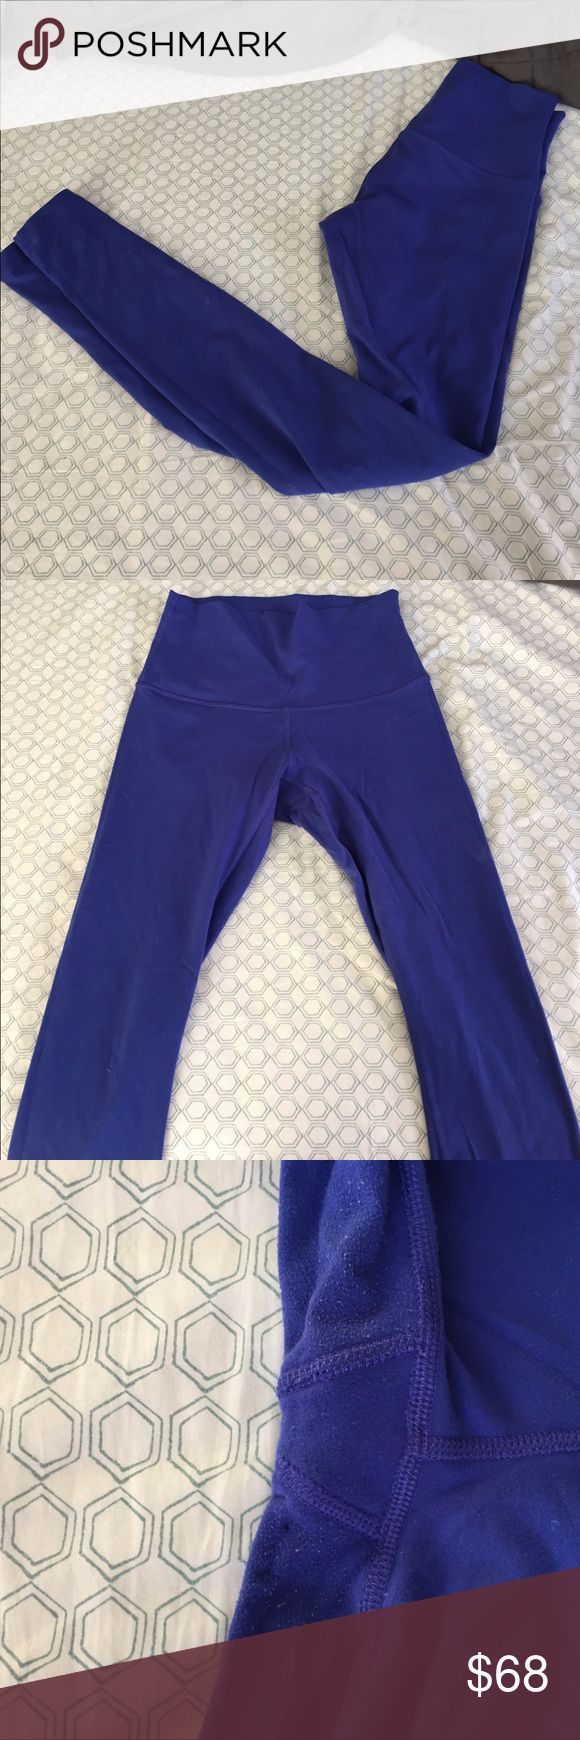 25+ best ideas about Royal Blue Leggings on Pinterest | Royal blue pants Royal blue jeans and ...